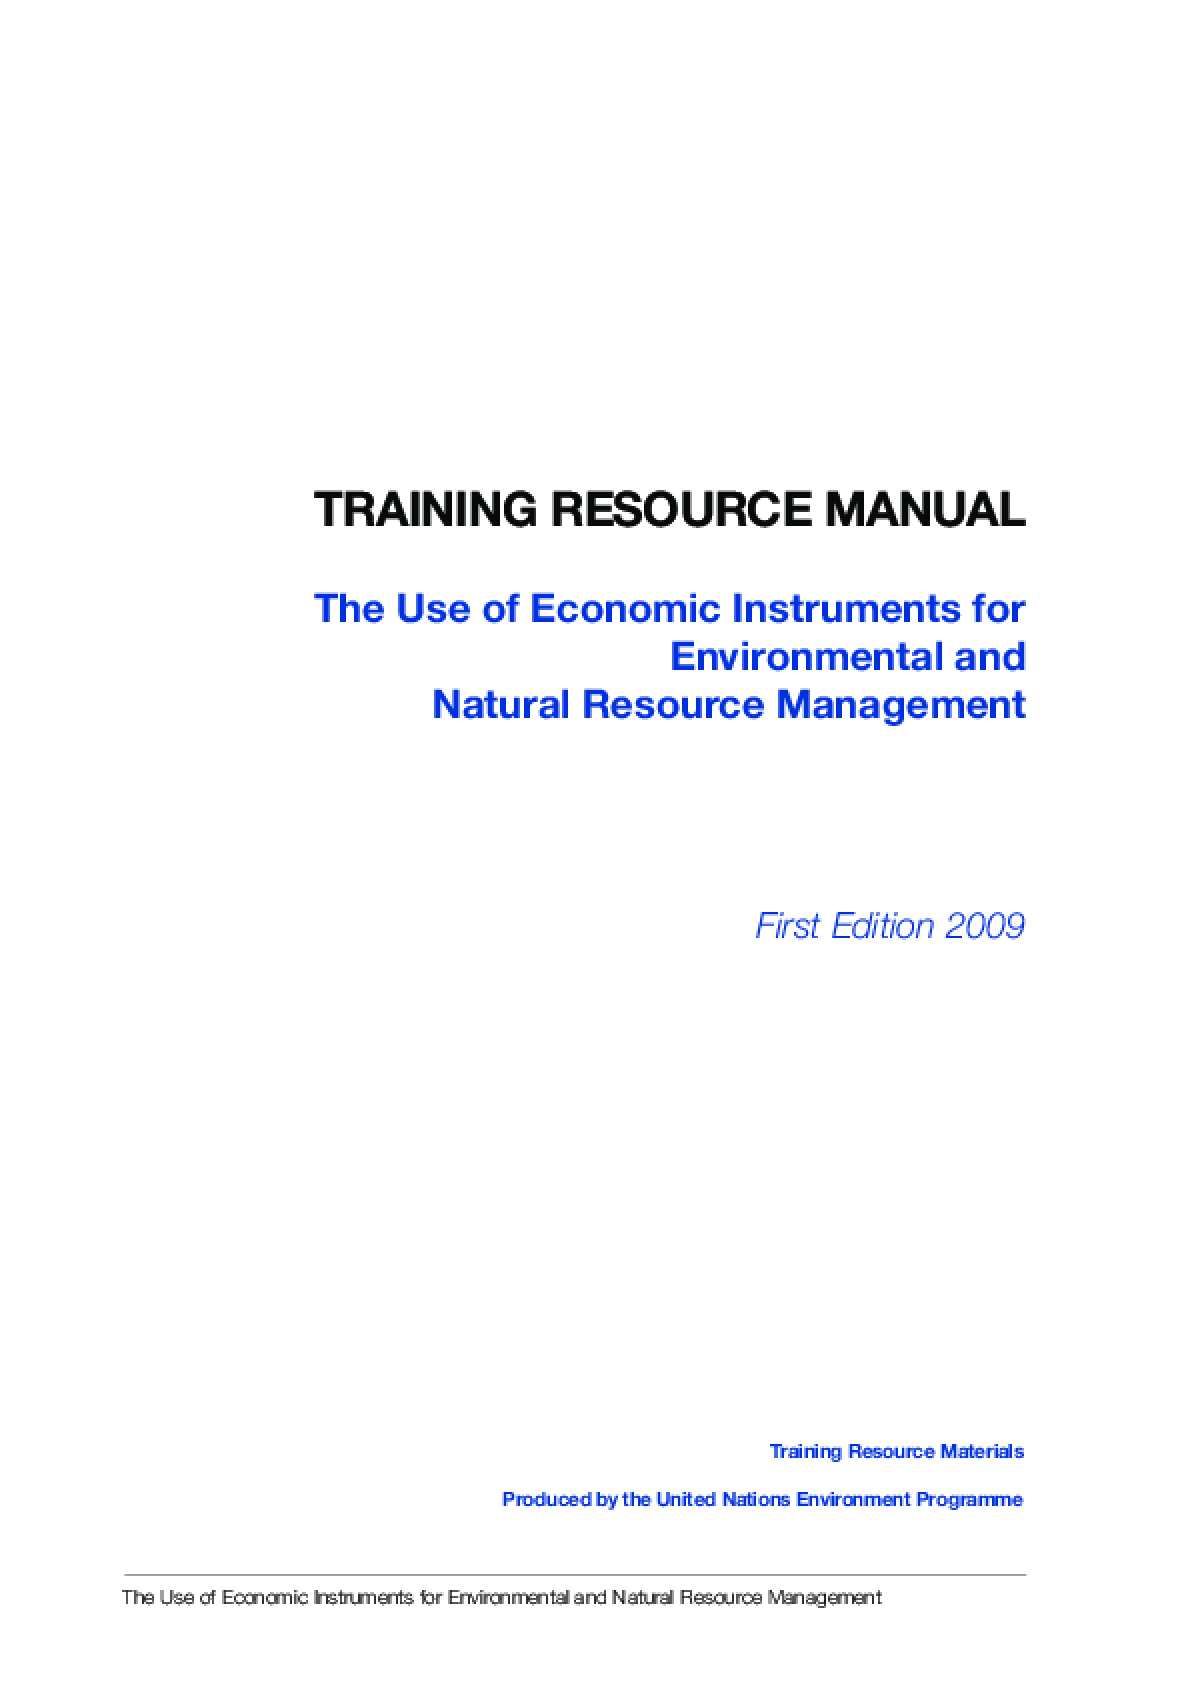 Training Resource Manual: The Use of Economic Instruments for Environmental and Natural Resource Management